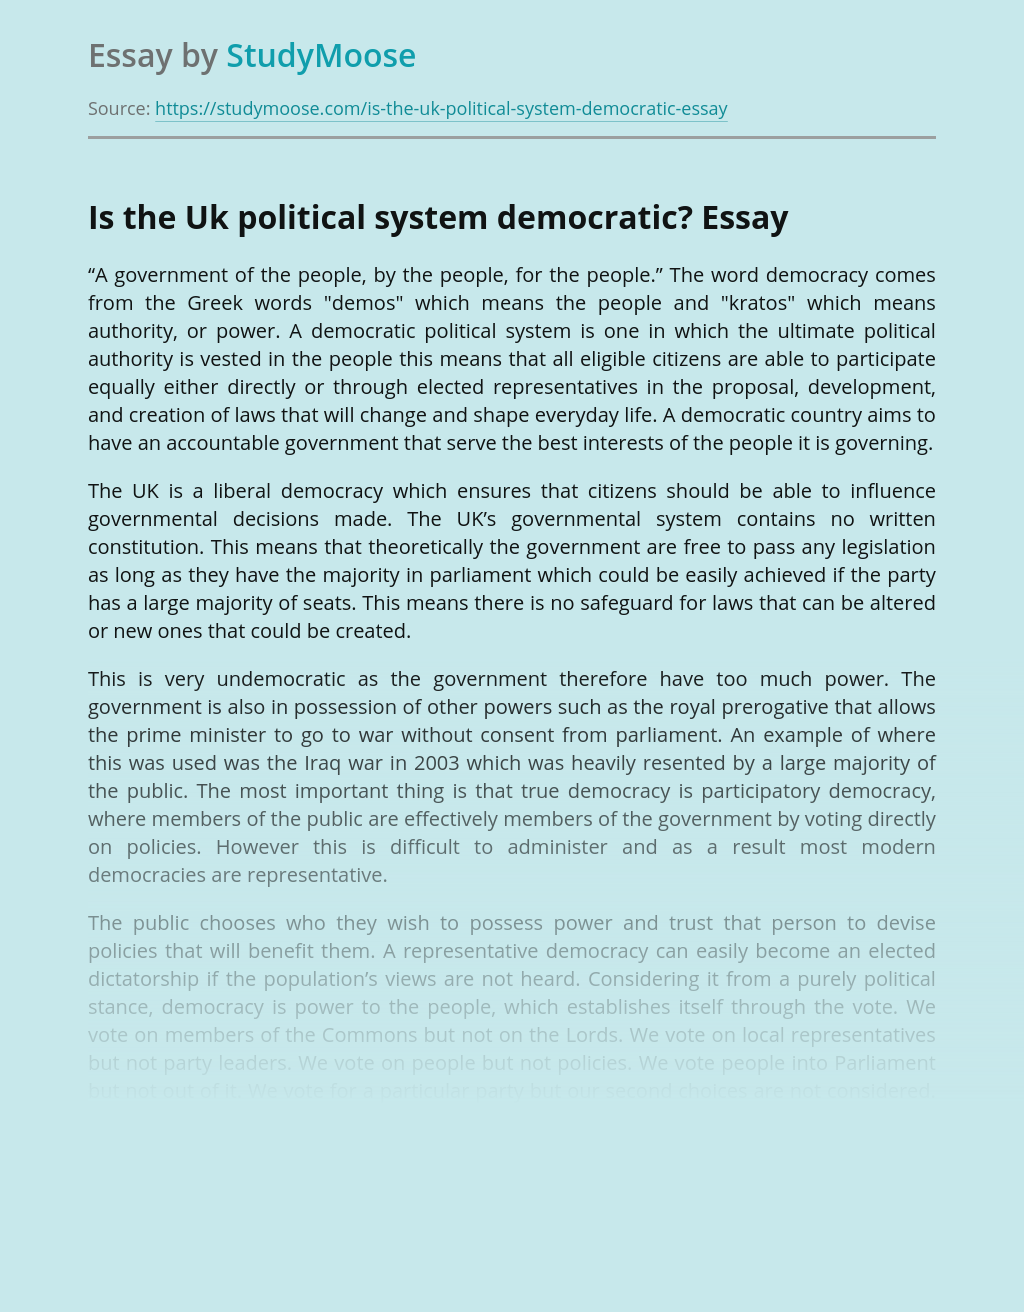 Is The Britain Truly Democratic?